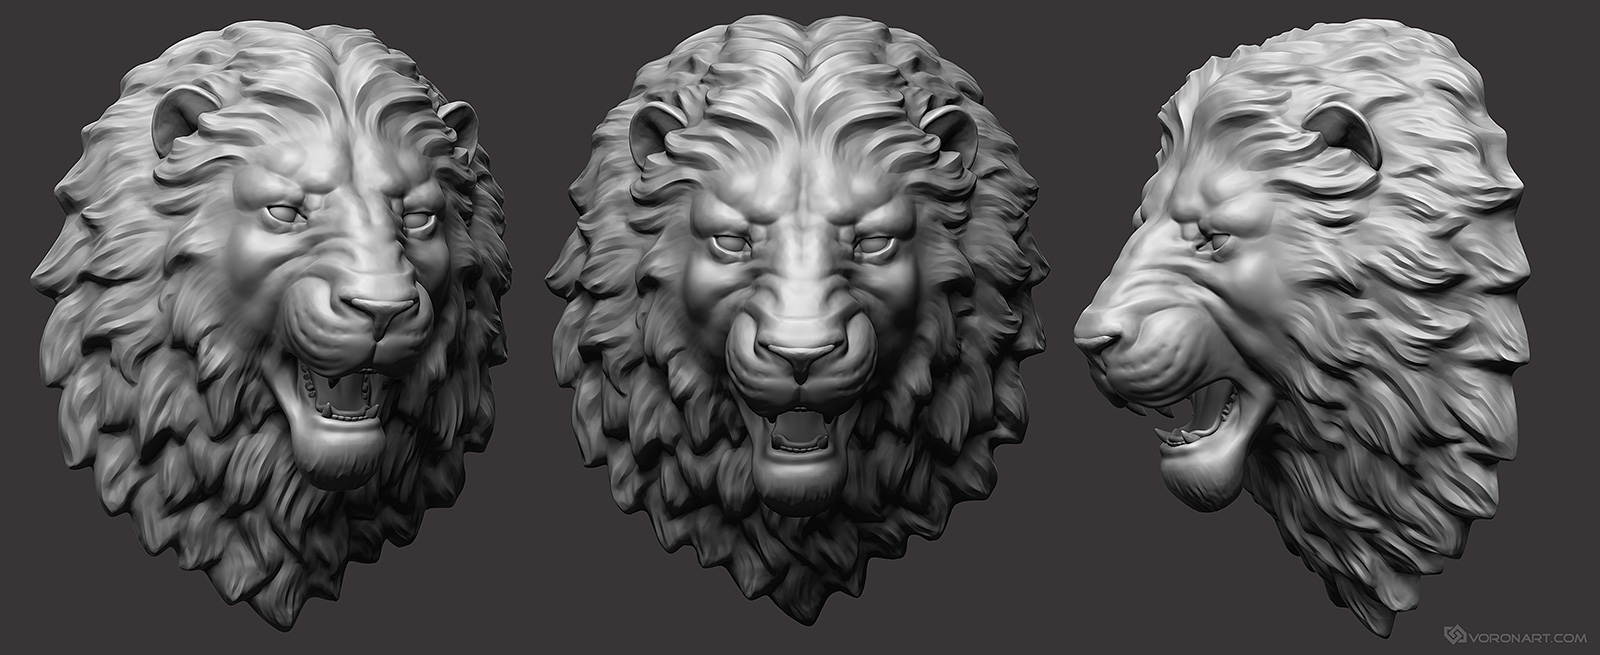 Angry lion head 3d-Sculpture. 3d printable